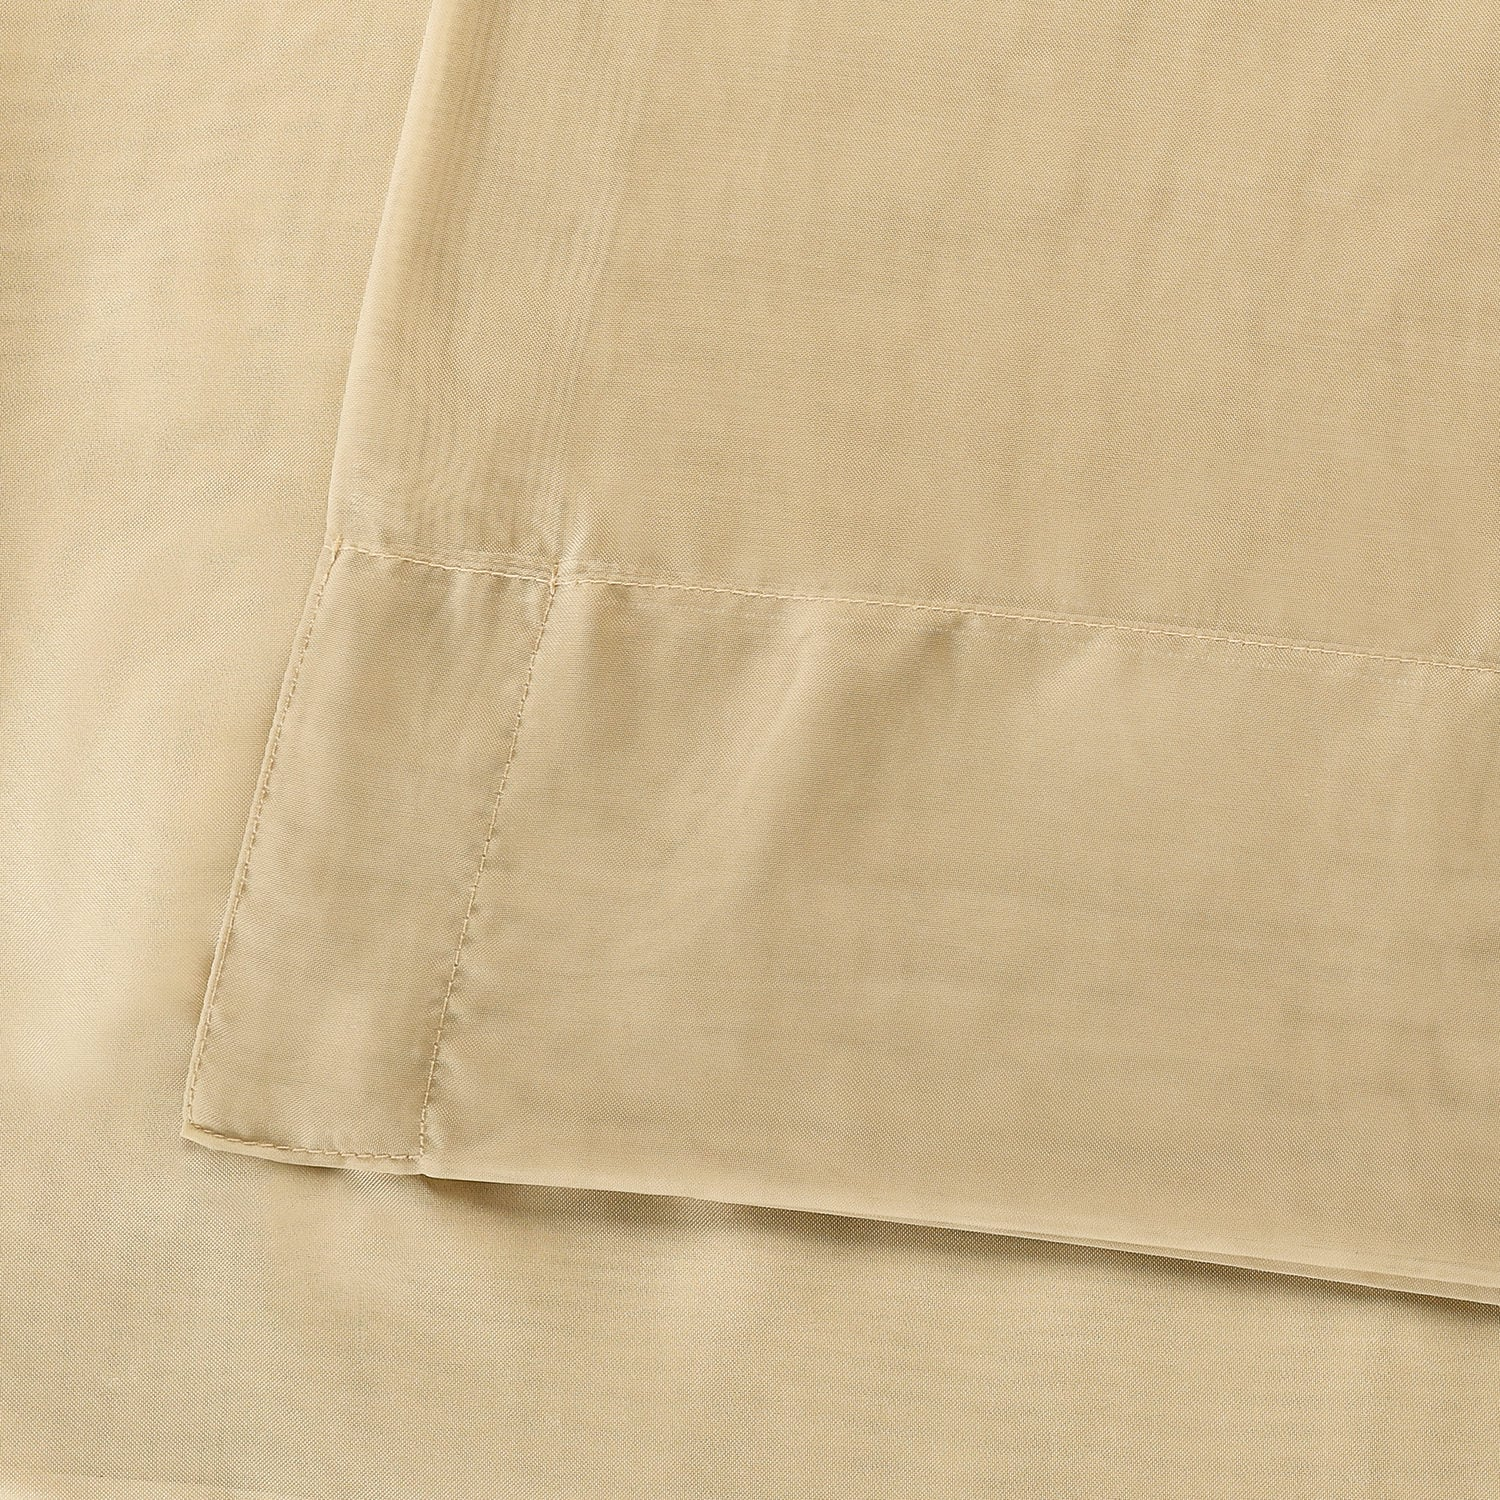 Solid Soft Tan Voile Poly Sheer Curtain Pair (2 Panels)